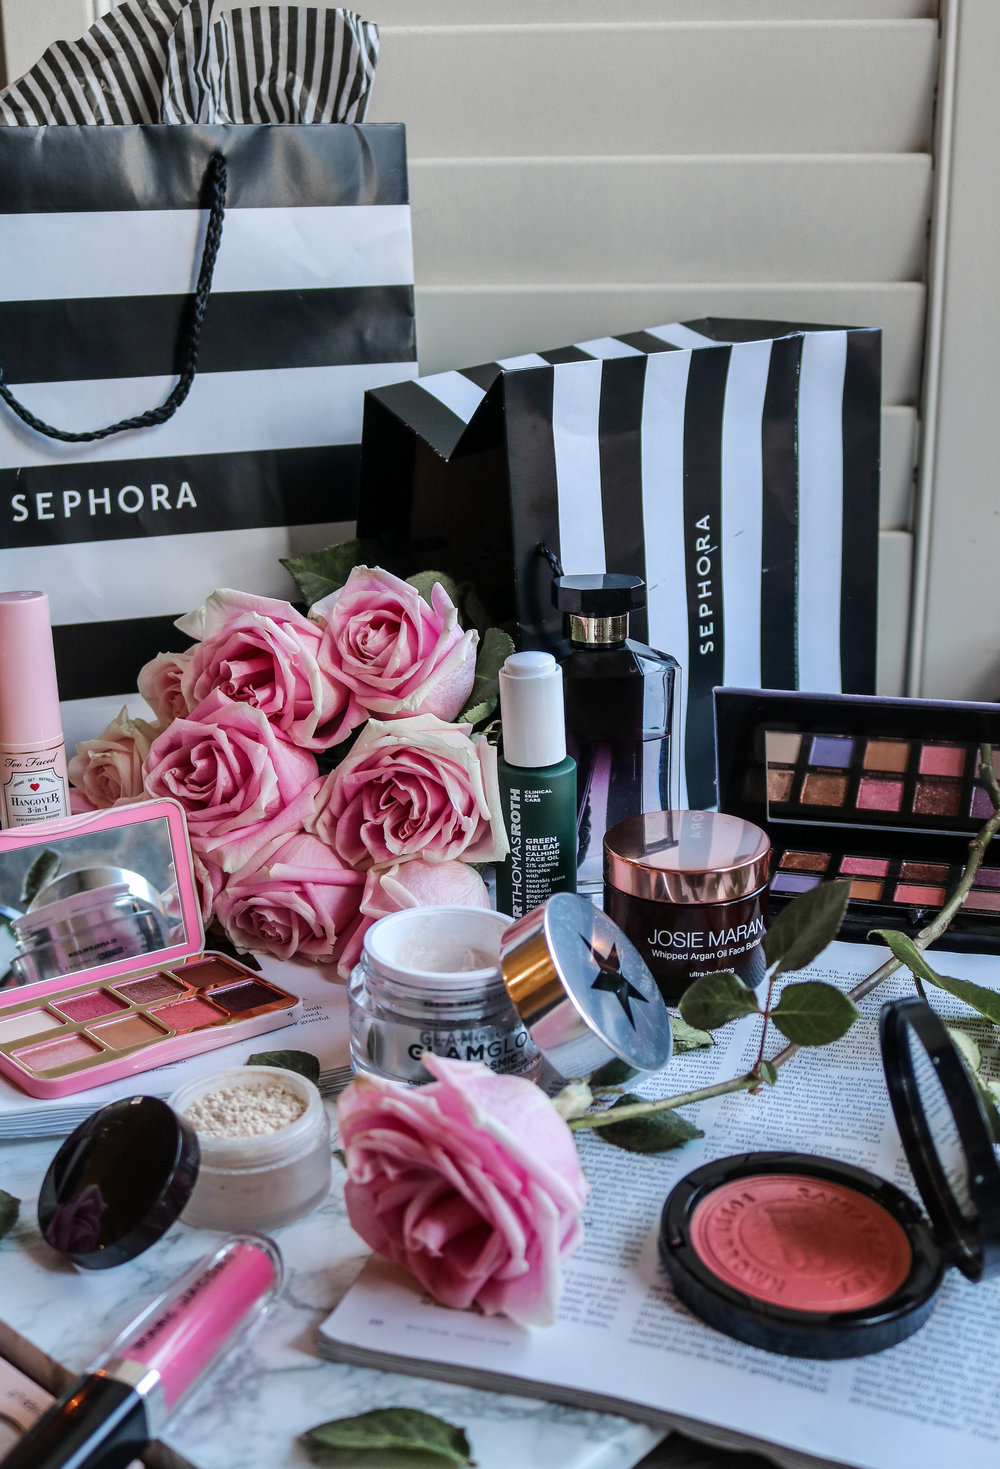 The Hungarian Brunette shopping at sephora, tips to get the best bang for your buck